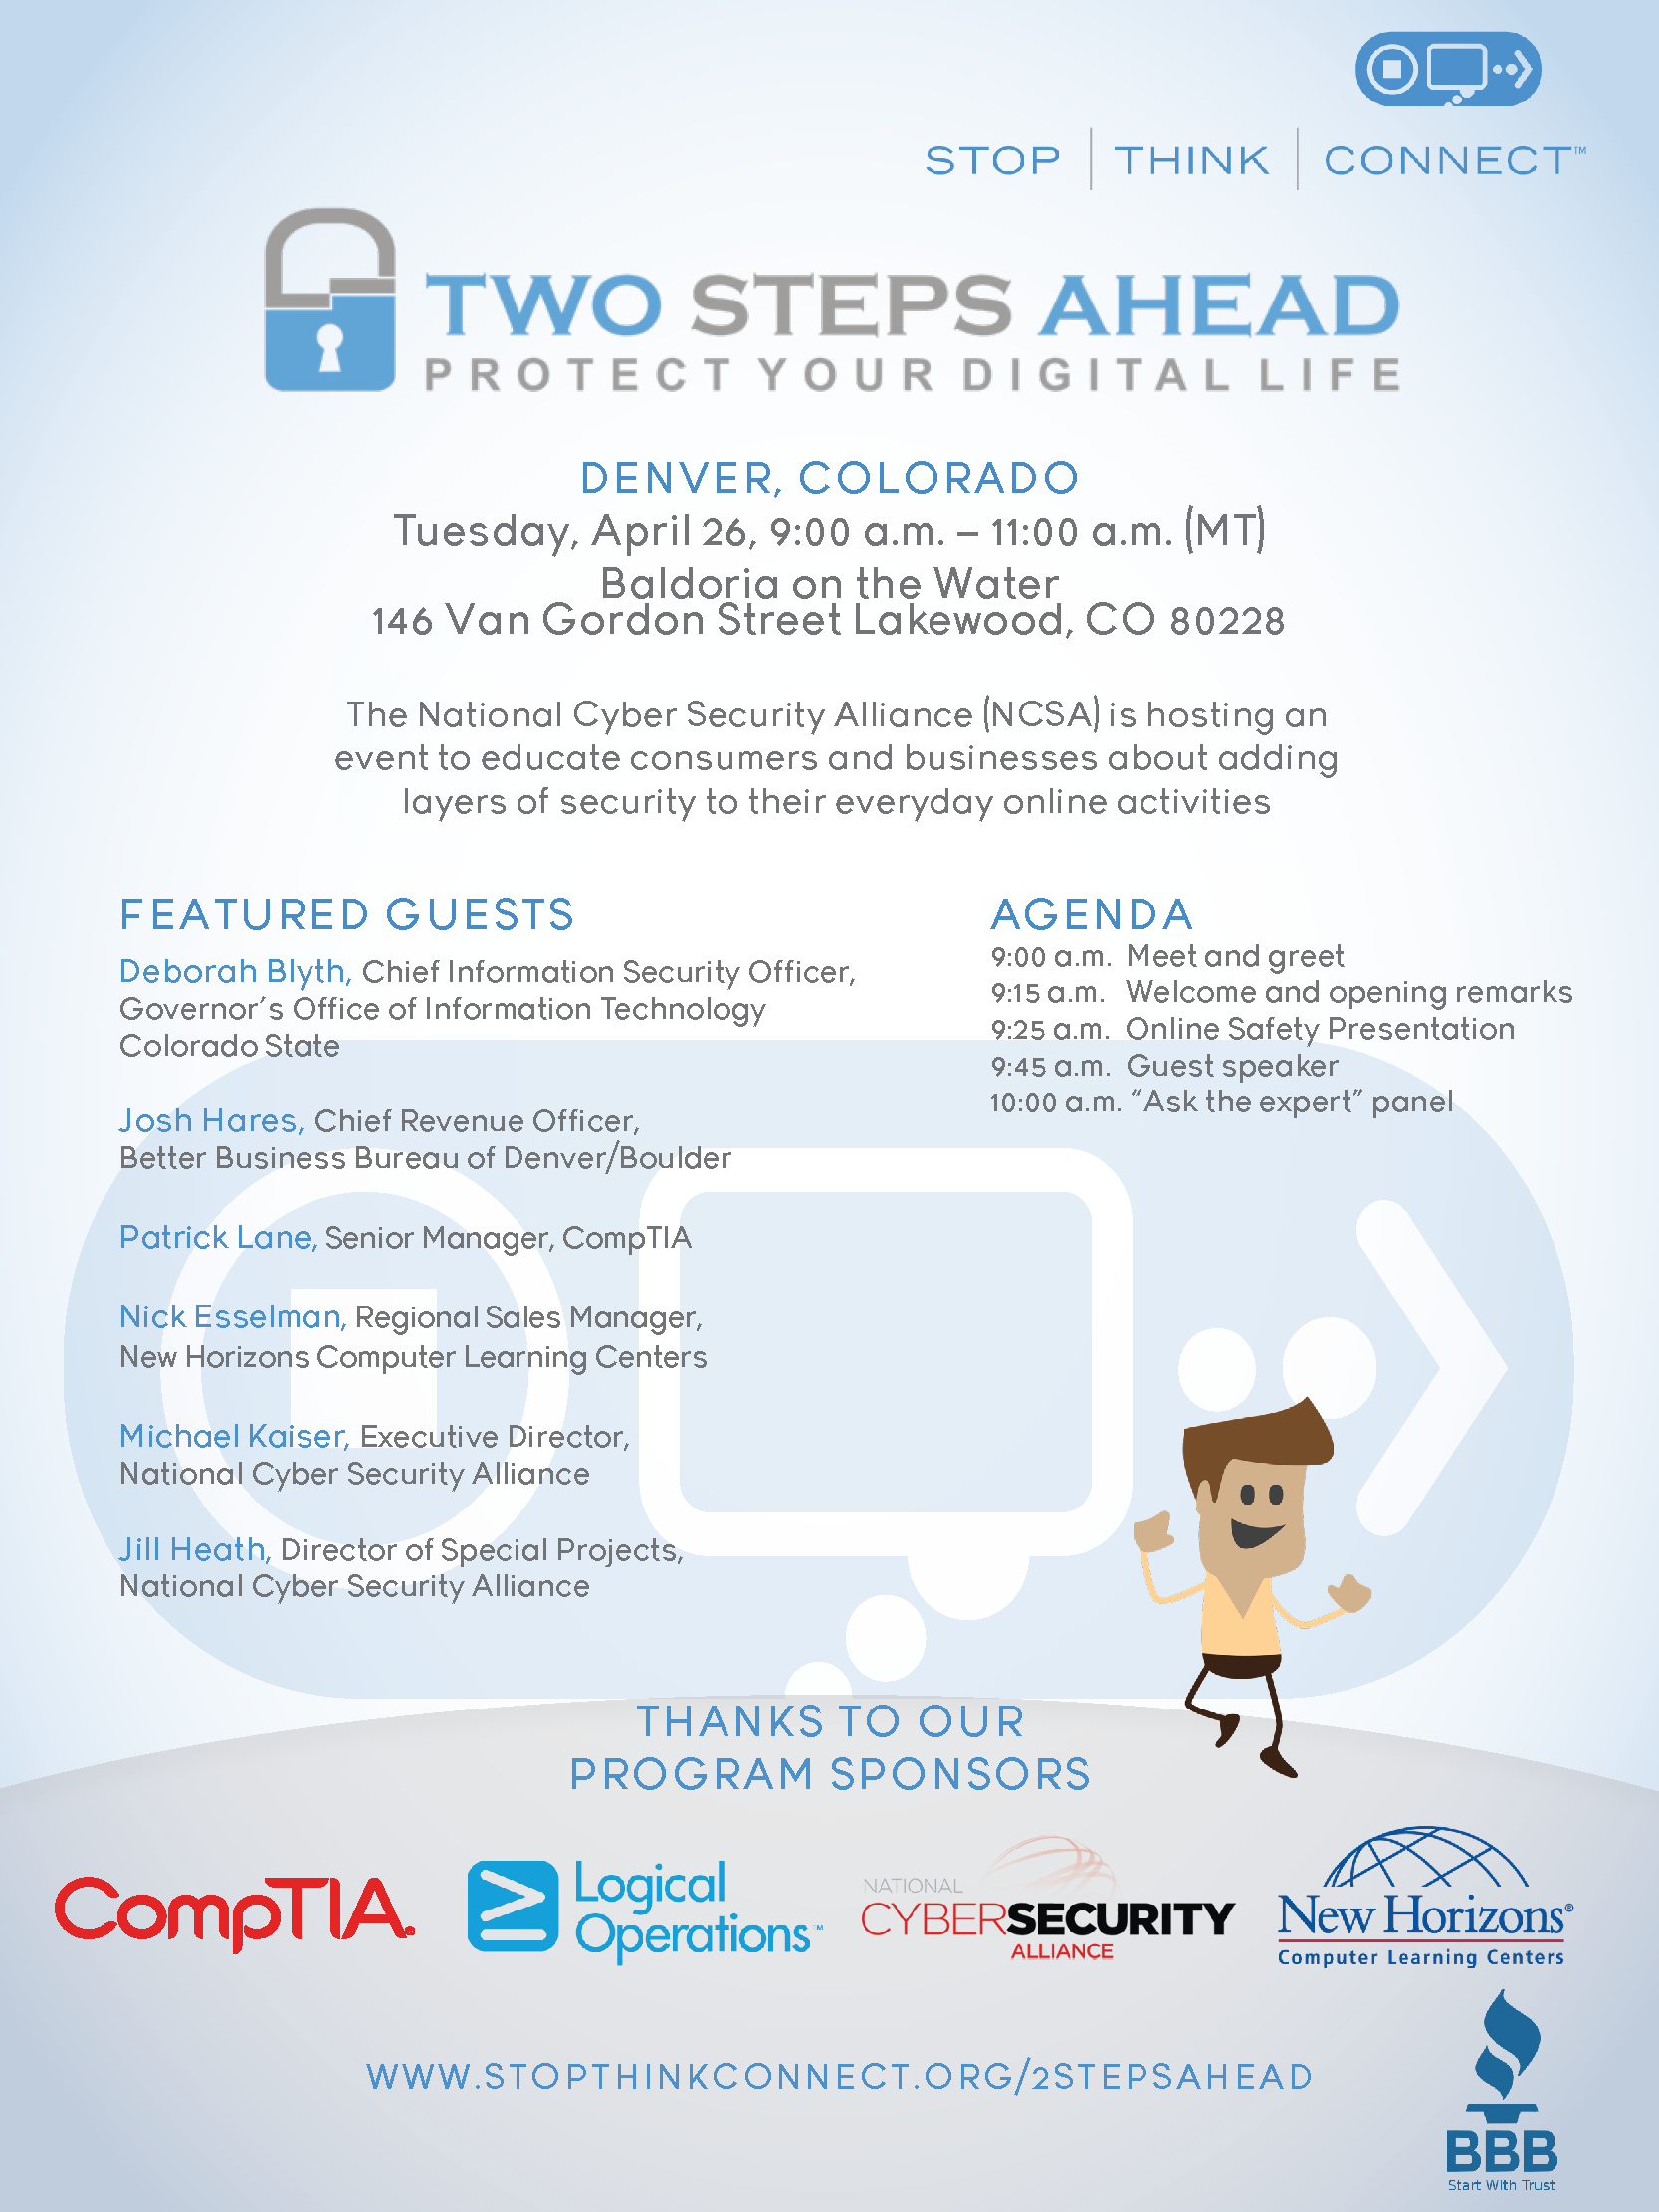 The National Cyber Security Alliance (NCSA) is hosting an event to educate consumers and businesses about adding layers of security to their everyday online activities